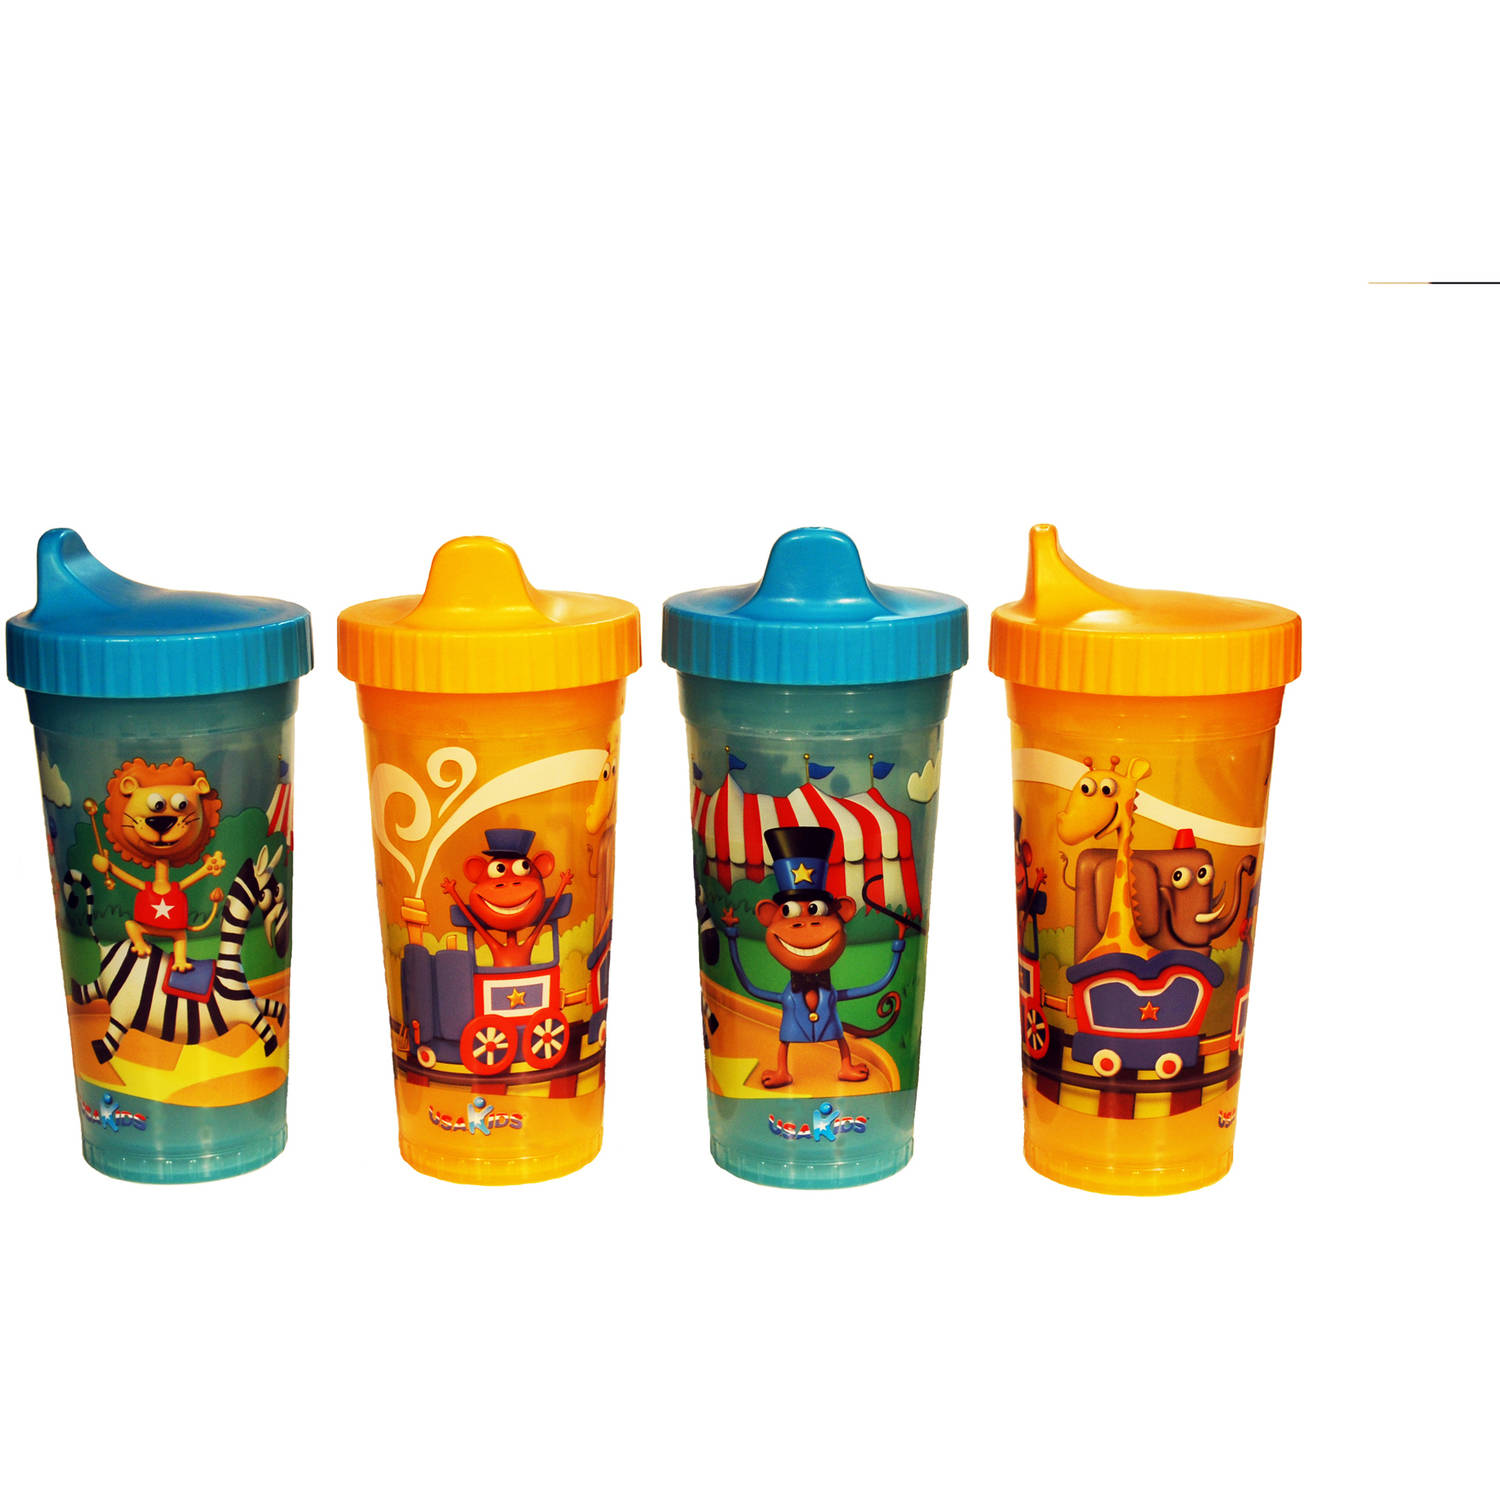 USA Kids - Circus Insulated BPA-Free Sippy Cups, 4-Pack